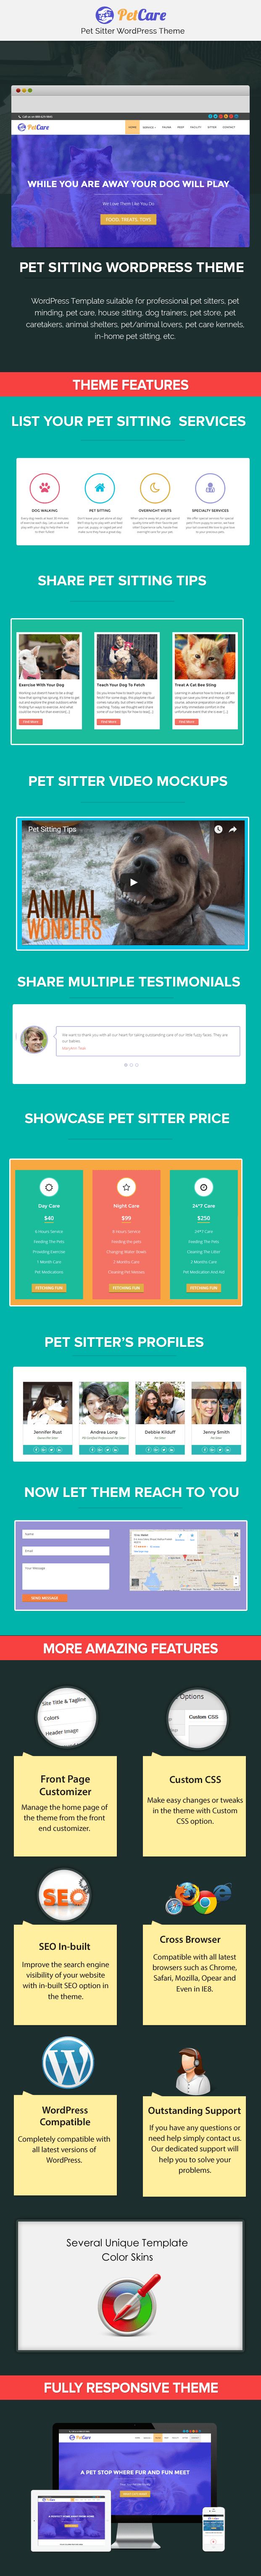 petcare-pet-sitting-wordpress-theme-Sale-page